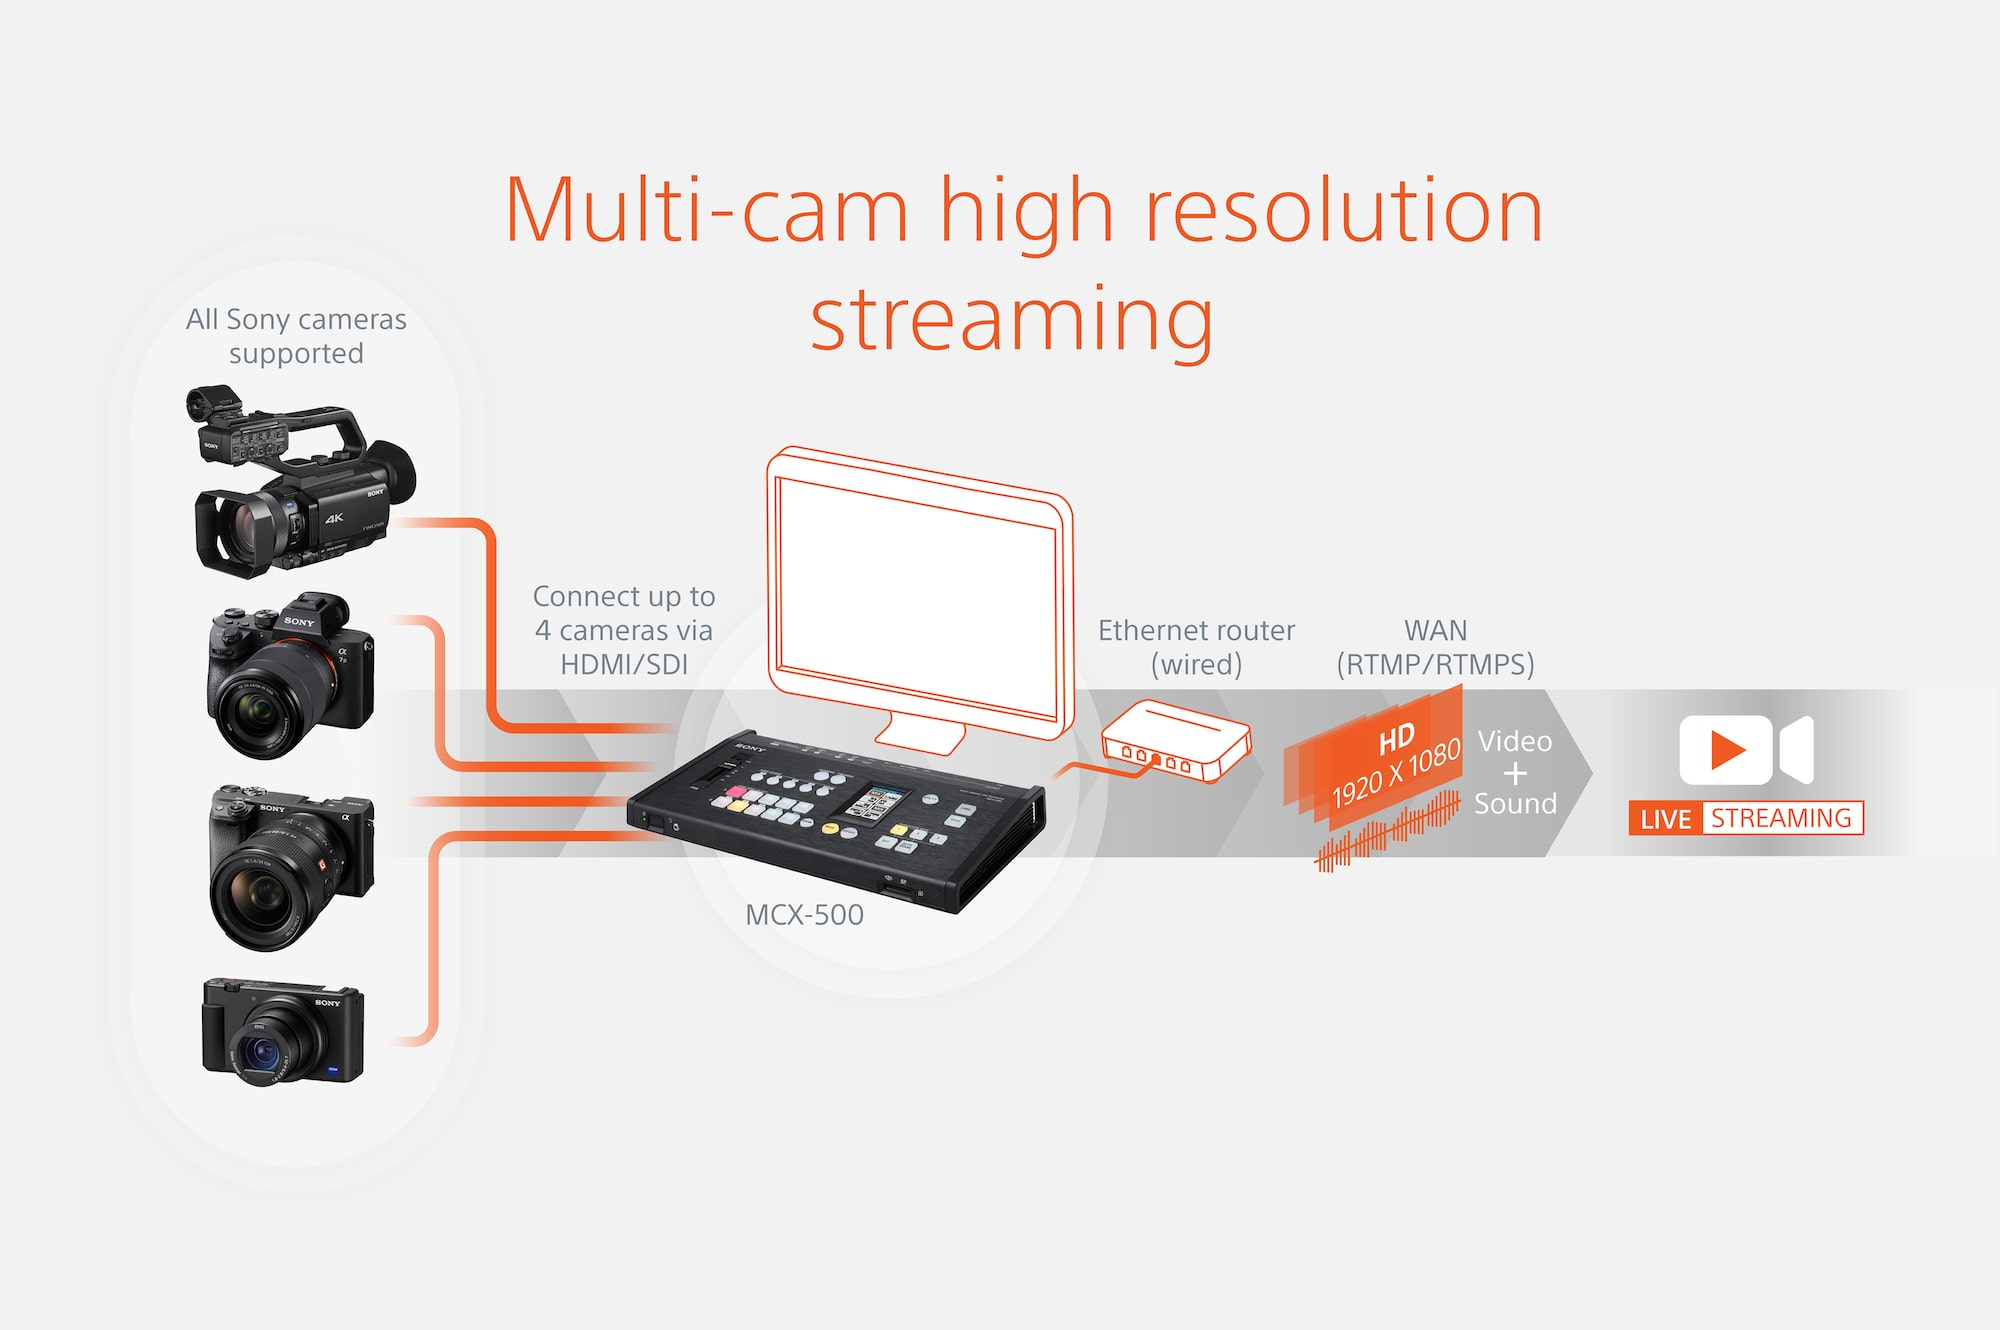 Studio-quality, multi-angle experience with up to four cameras*